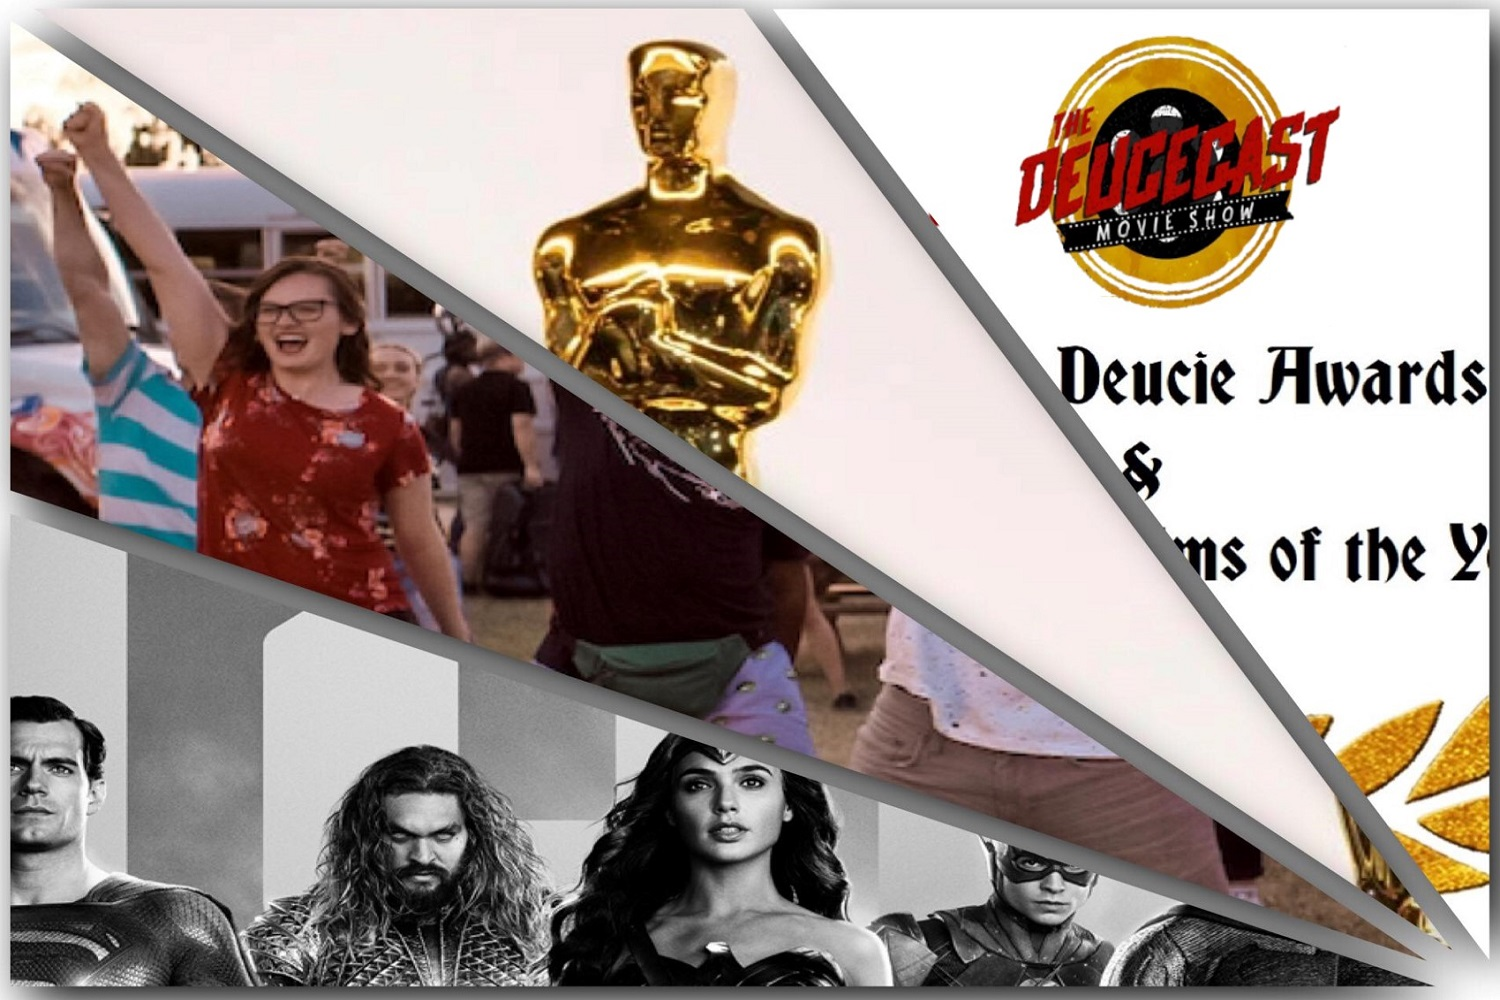 The Deucecast Movie Show #474: Zack Snyders See This Not That